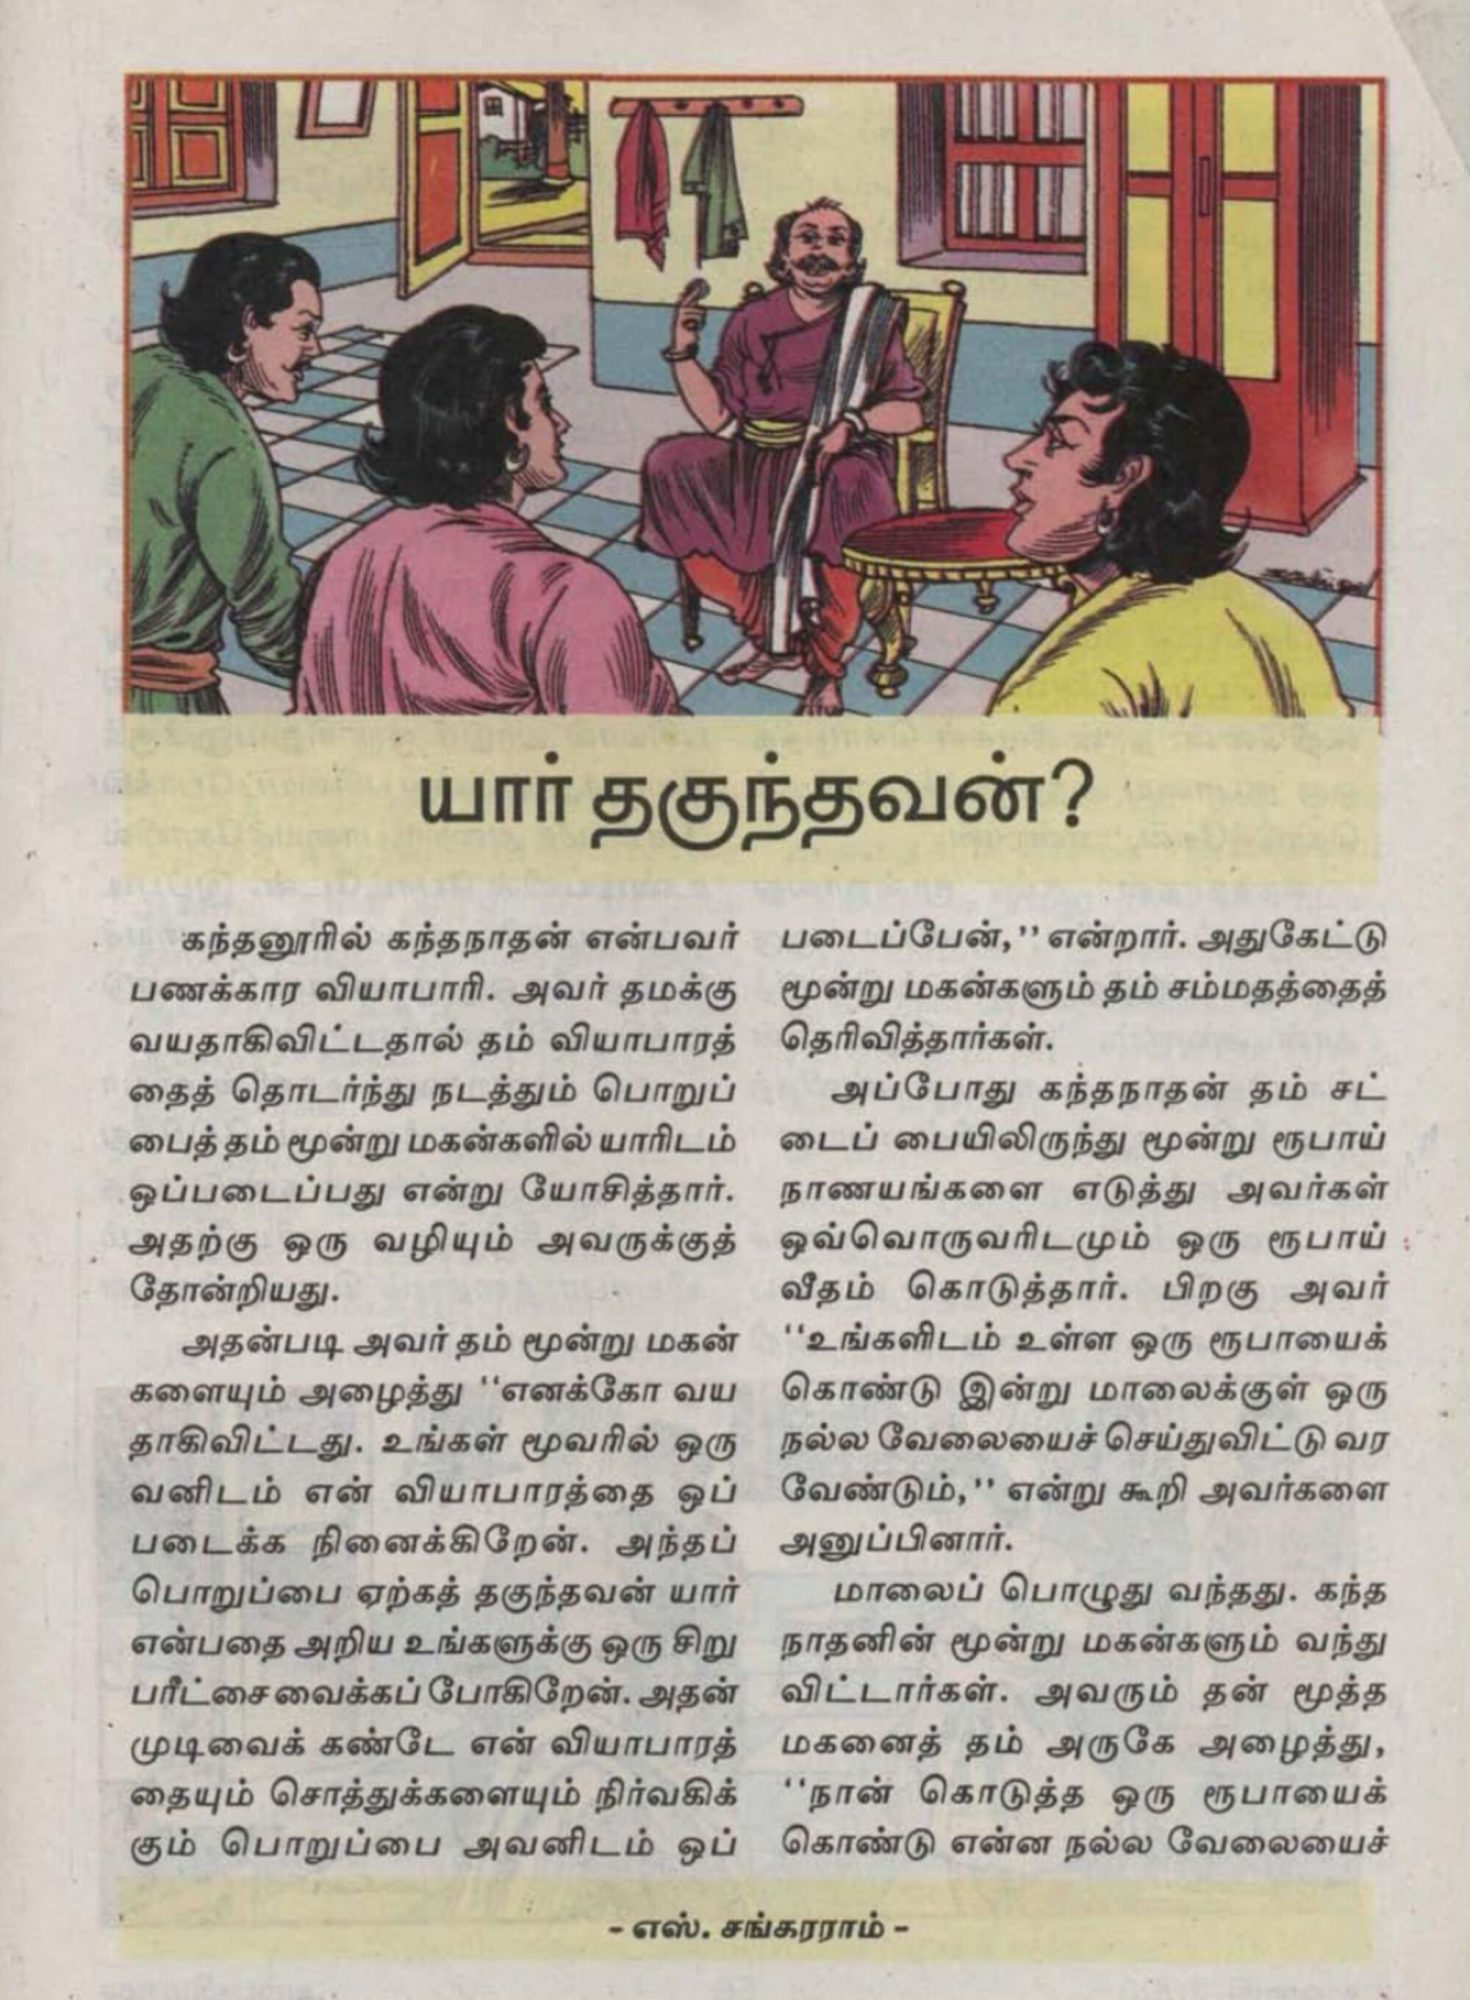 A story from the Tamil Edition Ambulimama (அம்புலிமாமா) - யார் தகுந்தவன்?